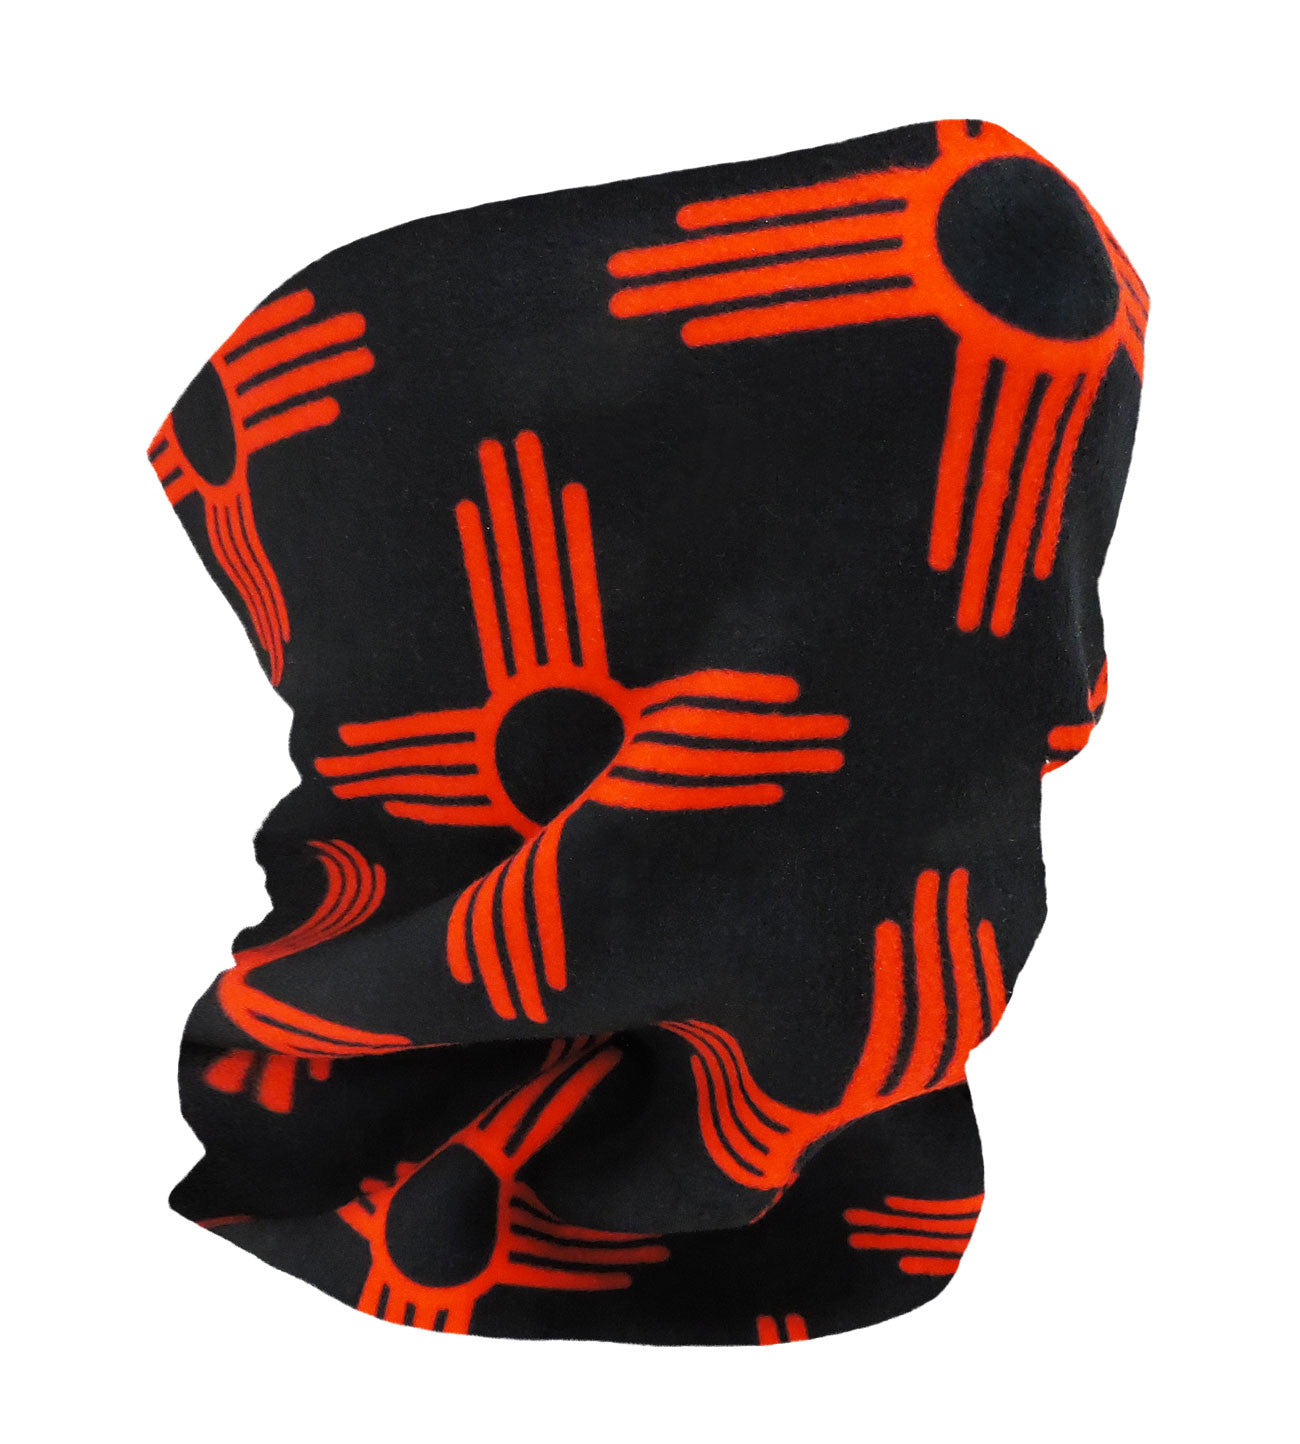 New Mexico Black/Red Neckwarmer